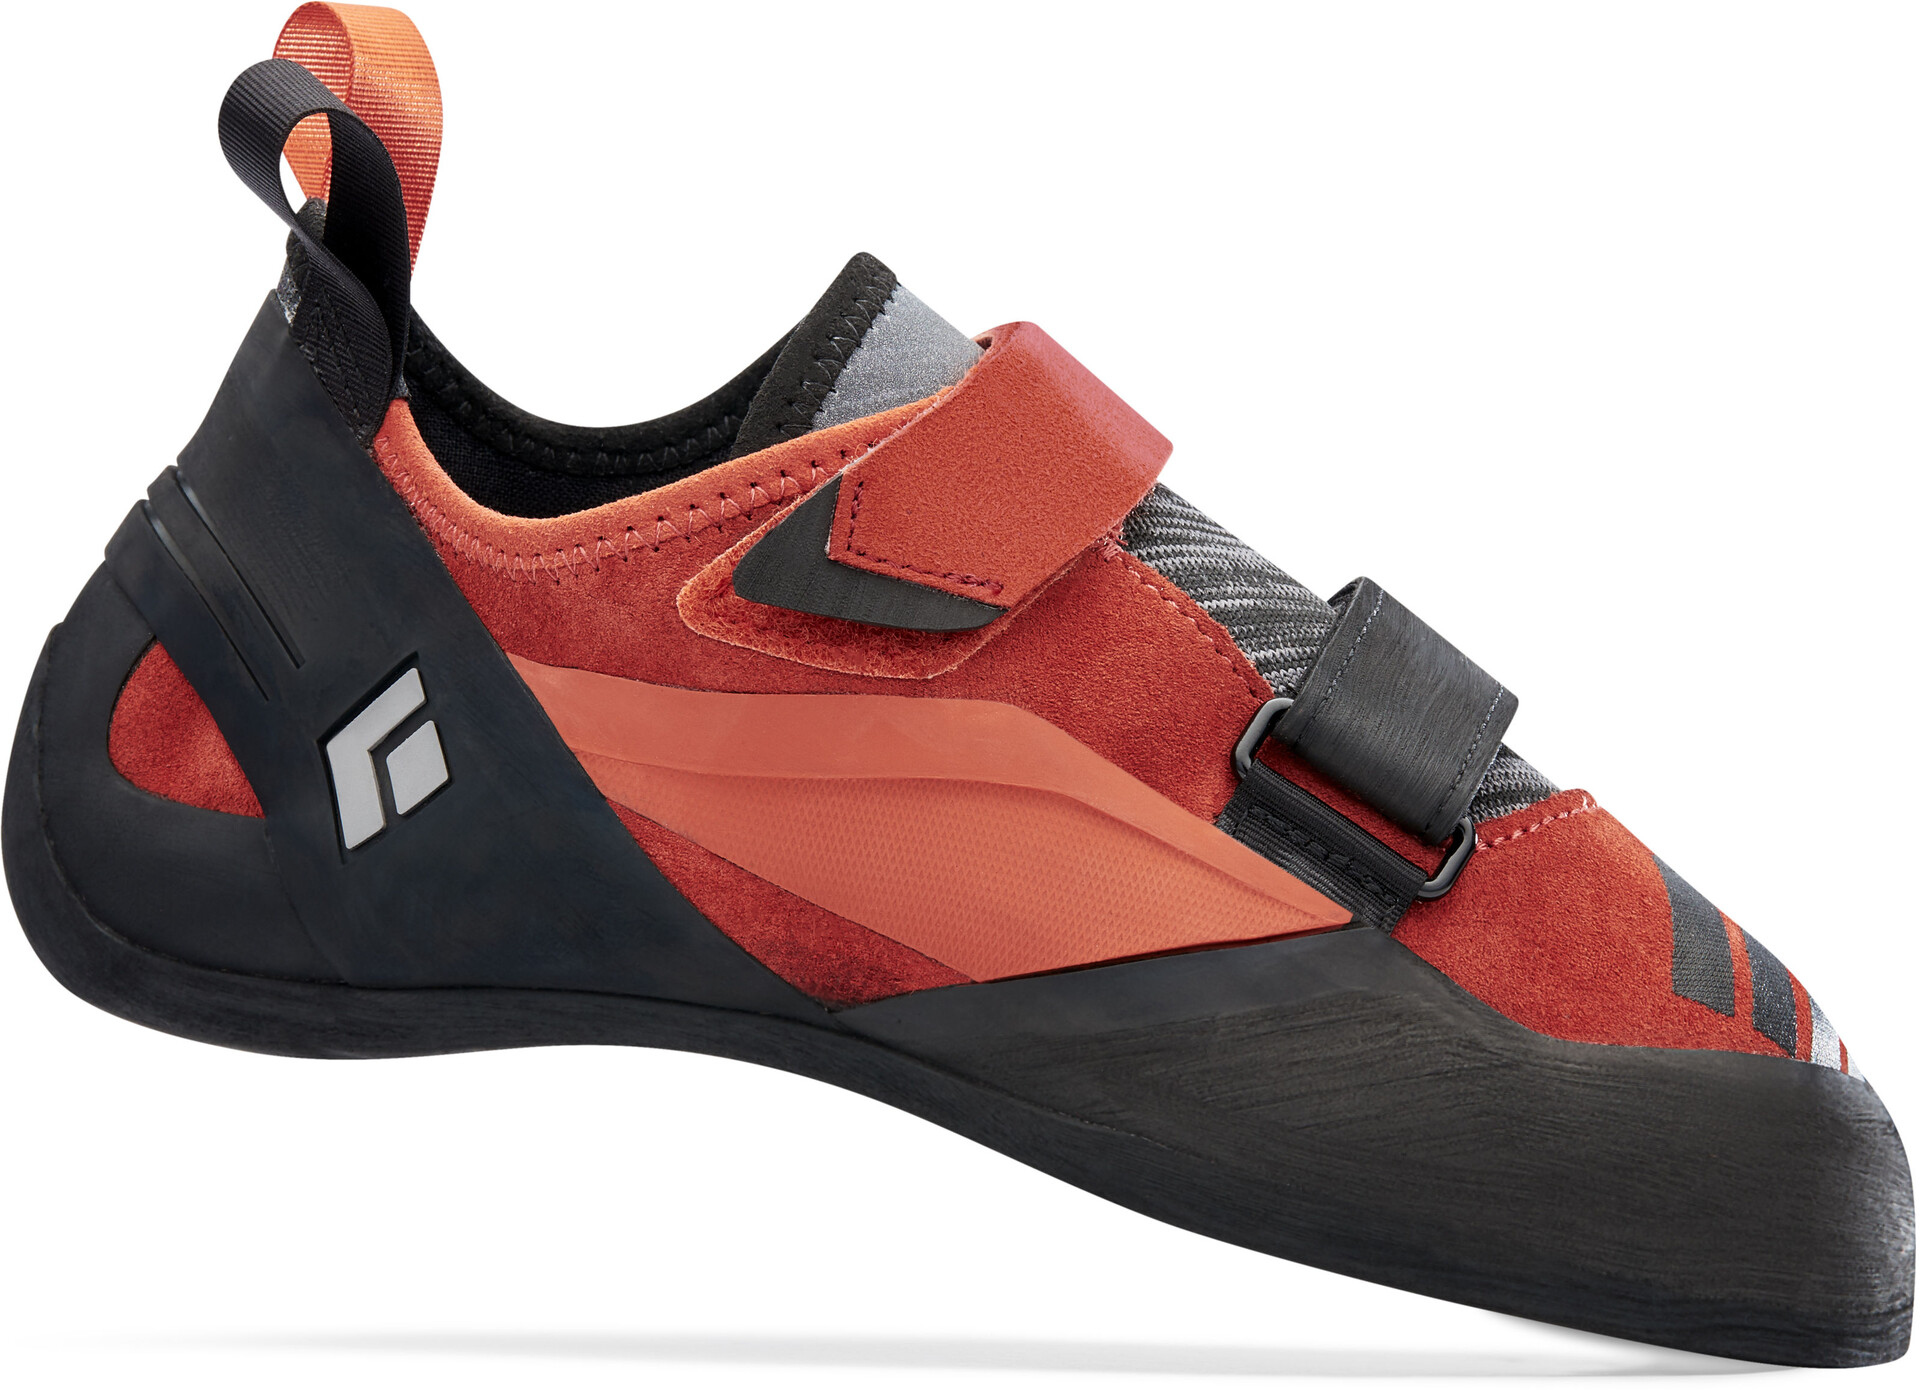 Mammut Focus Klettergurt Harnesses : Black diamond focus climbing shoes men rust campz